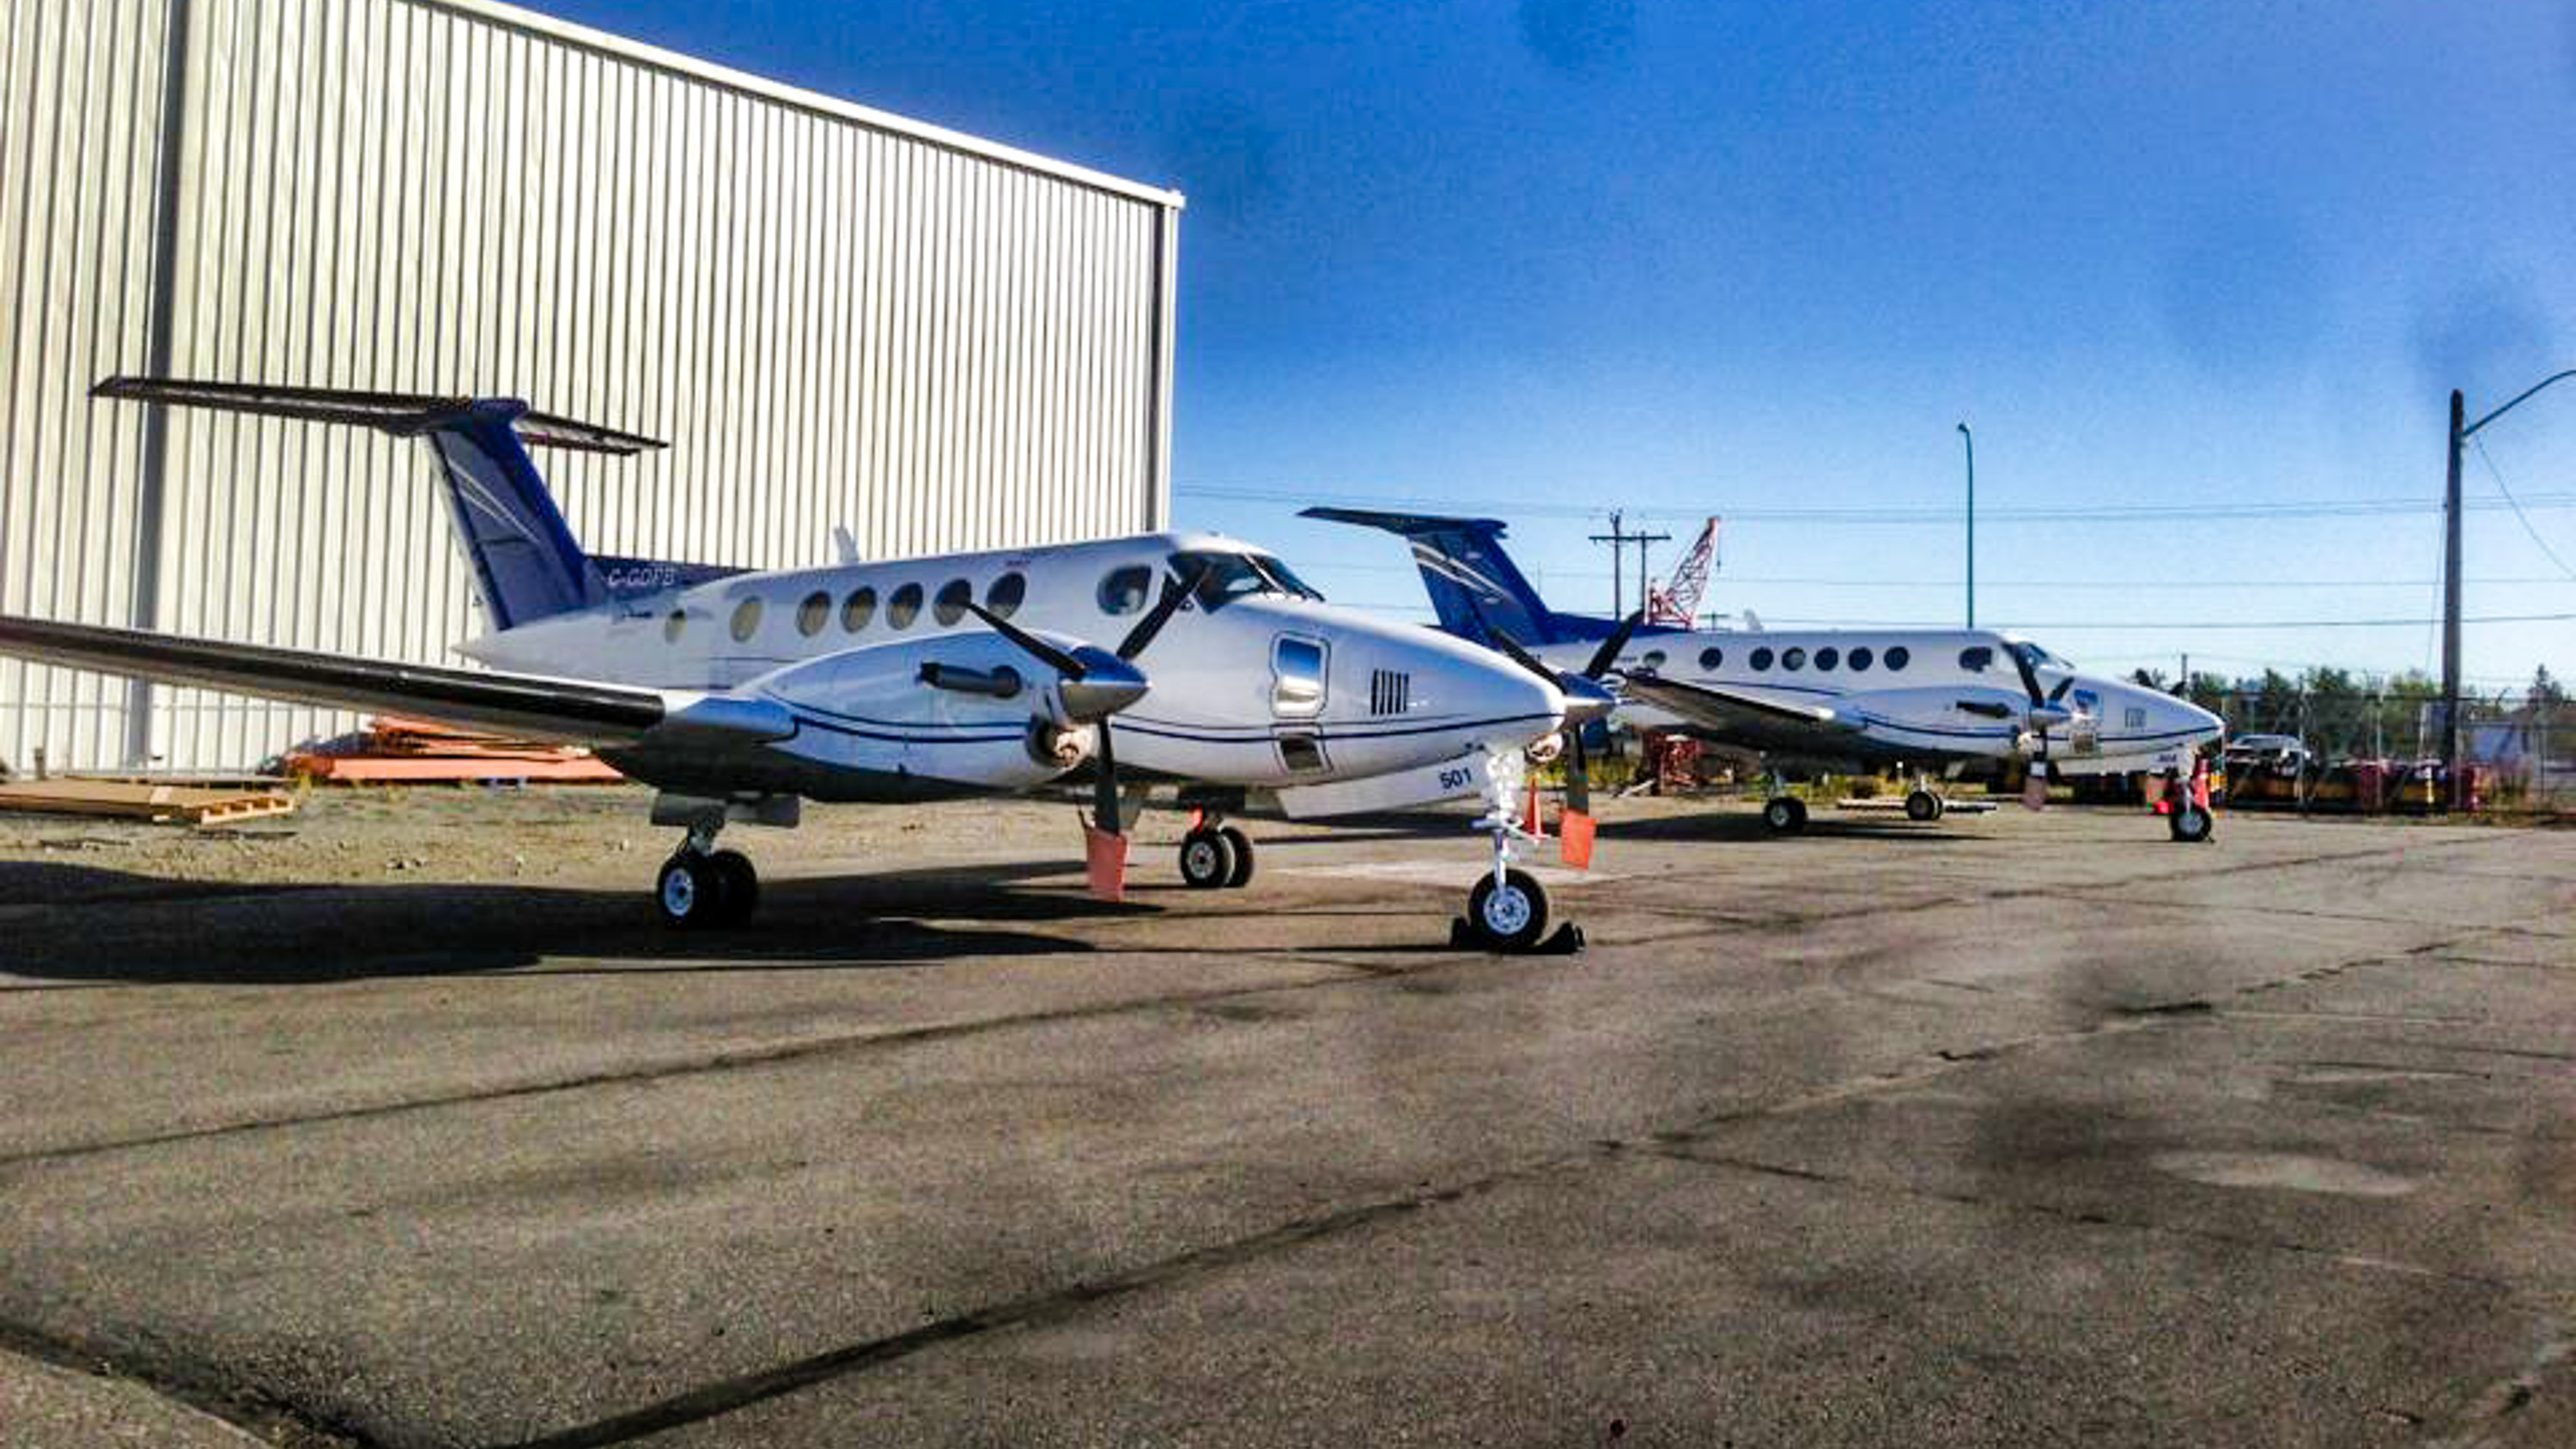 Air Tindi King Air 200 aircraft pictured on the tarmac in a 2013 post to the airline's Facebook page